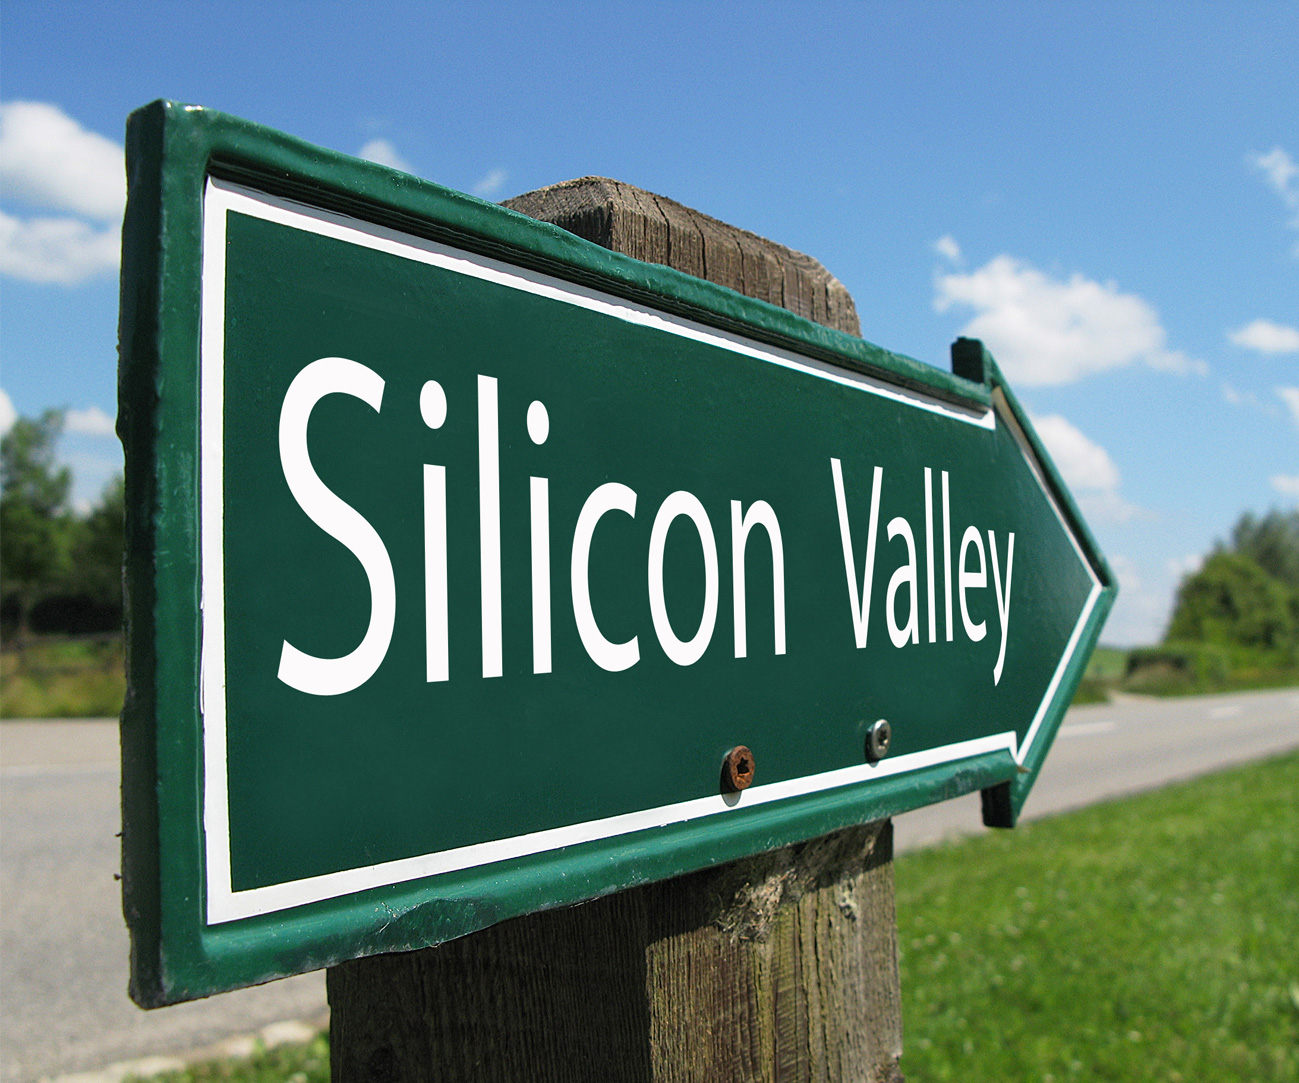 La experiencia Silicon Valley